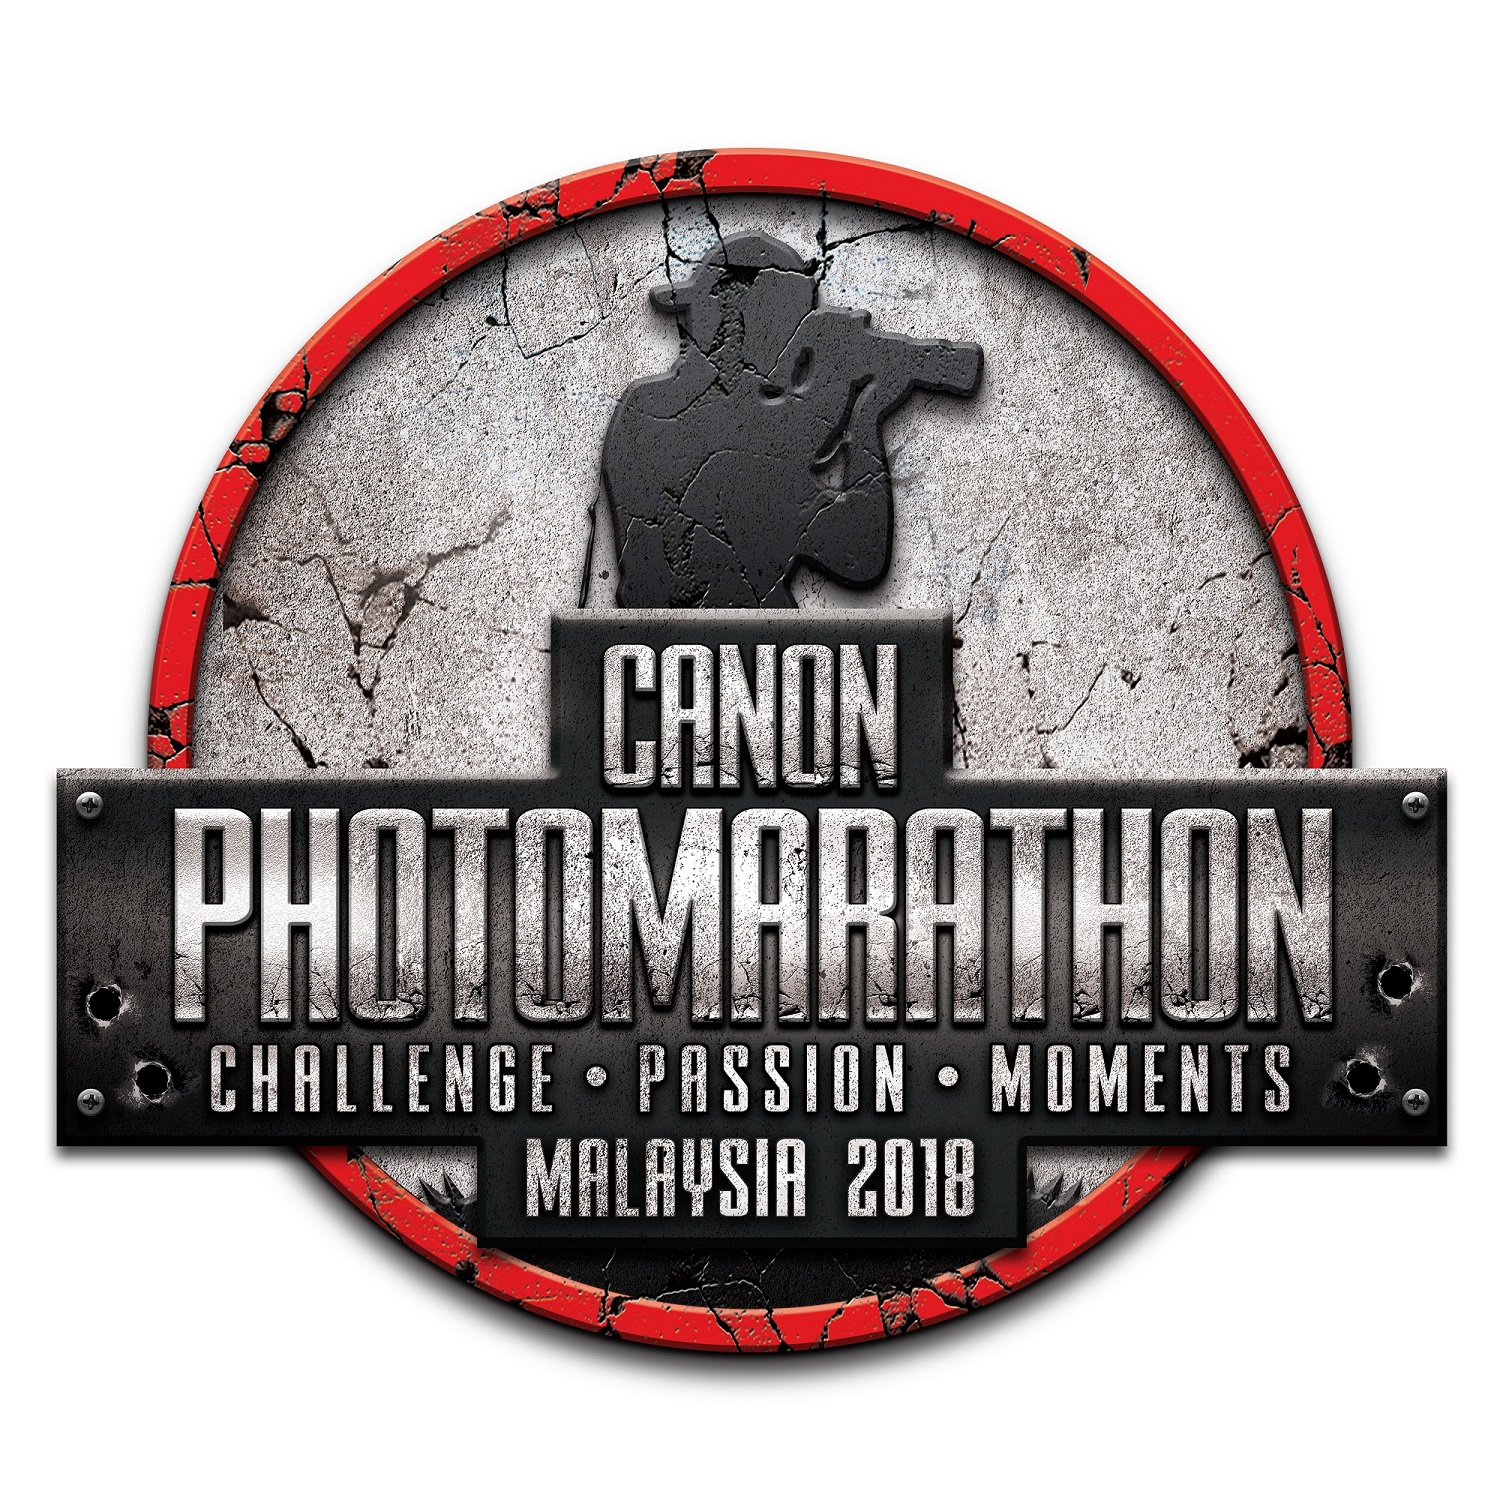 The Canon PhotoMarathon Malaysia is Back to Thrill Photography Enthusiasts!